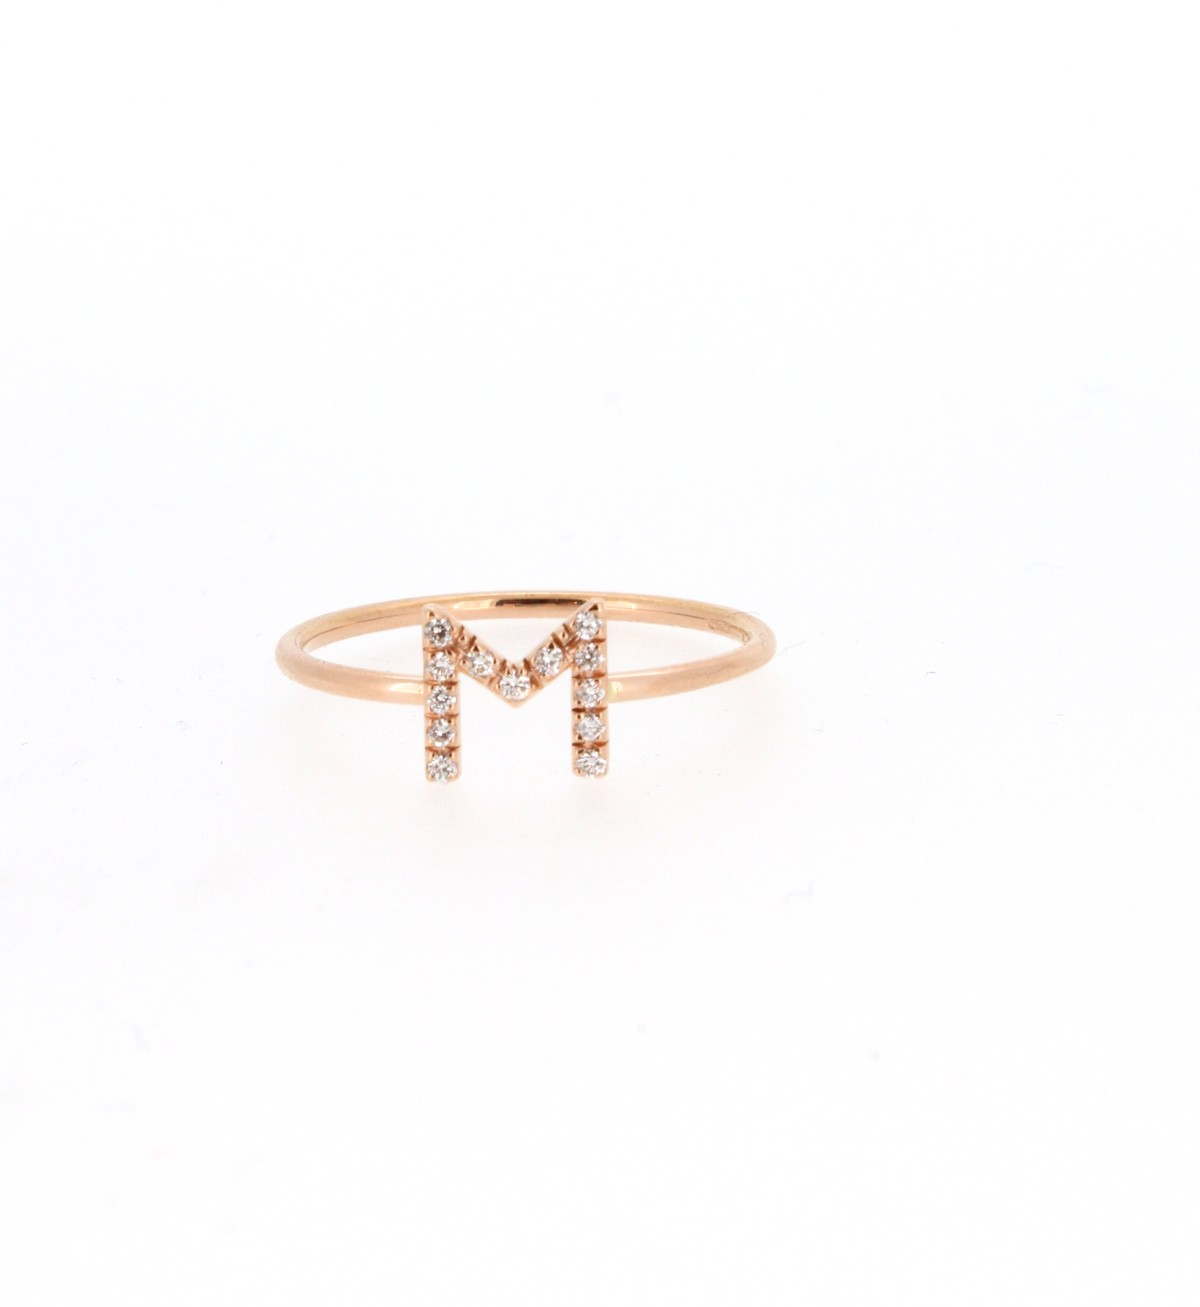 Ring Buchstabe M 18ct Gold - GalerieVoigt - FA1781-MR001